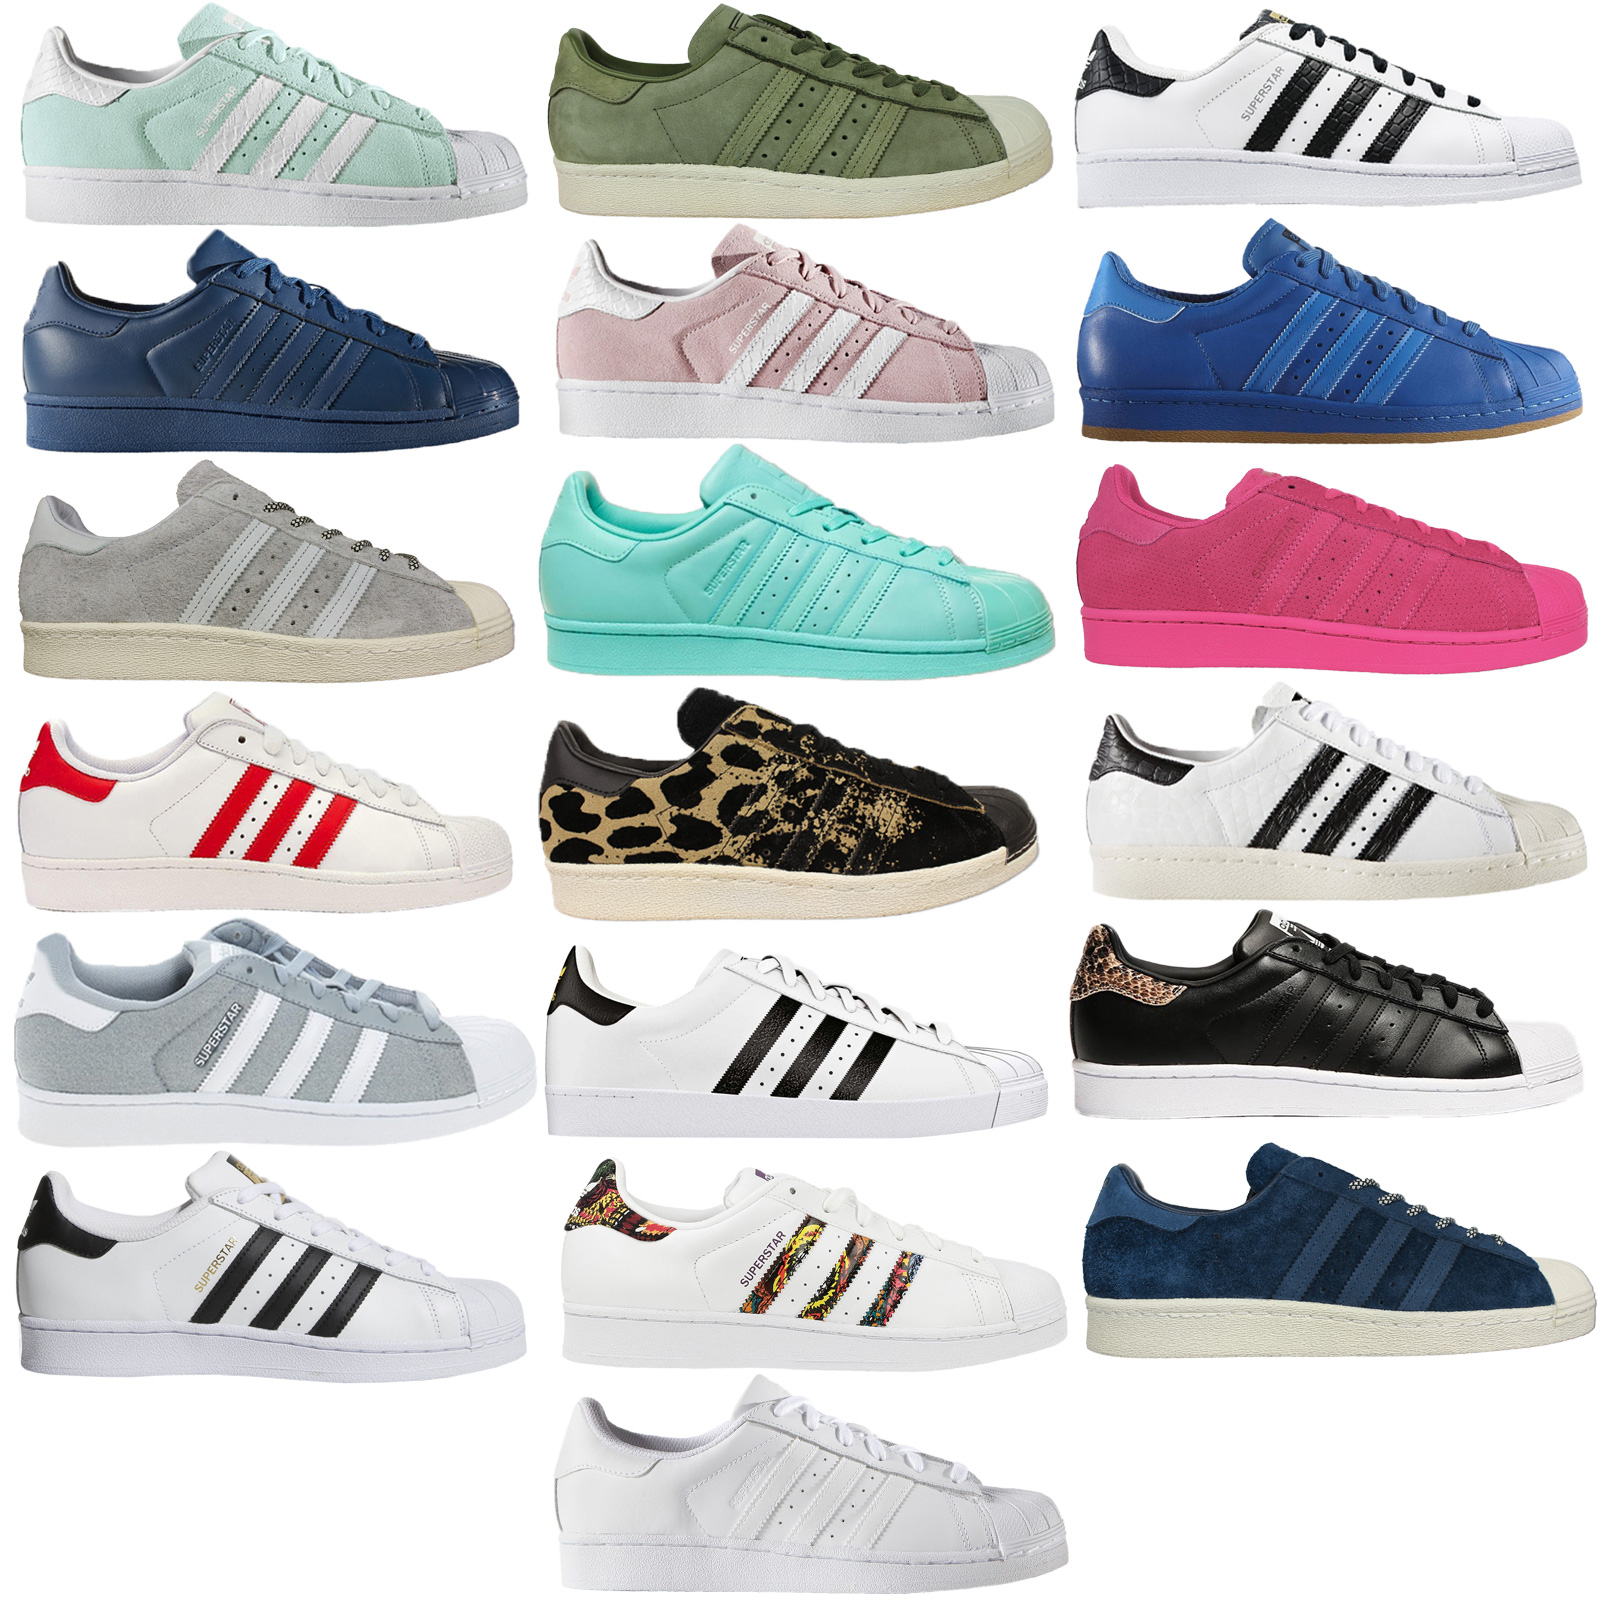 free shipping 021af f0589 Details about Adidas Originals Superstar Sst Unisex Leather Trainers Shoes